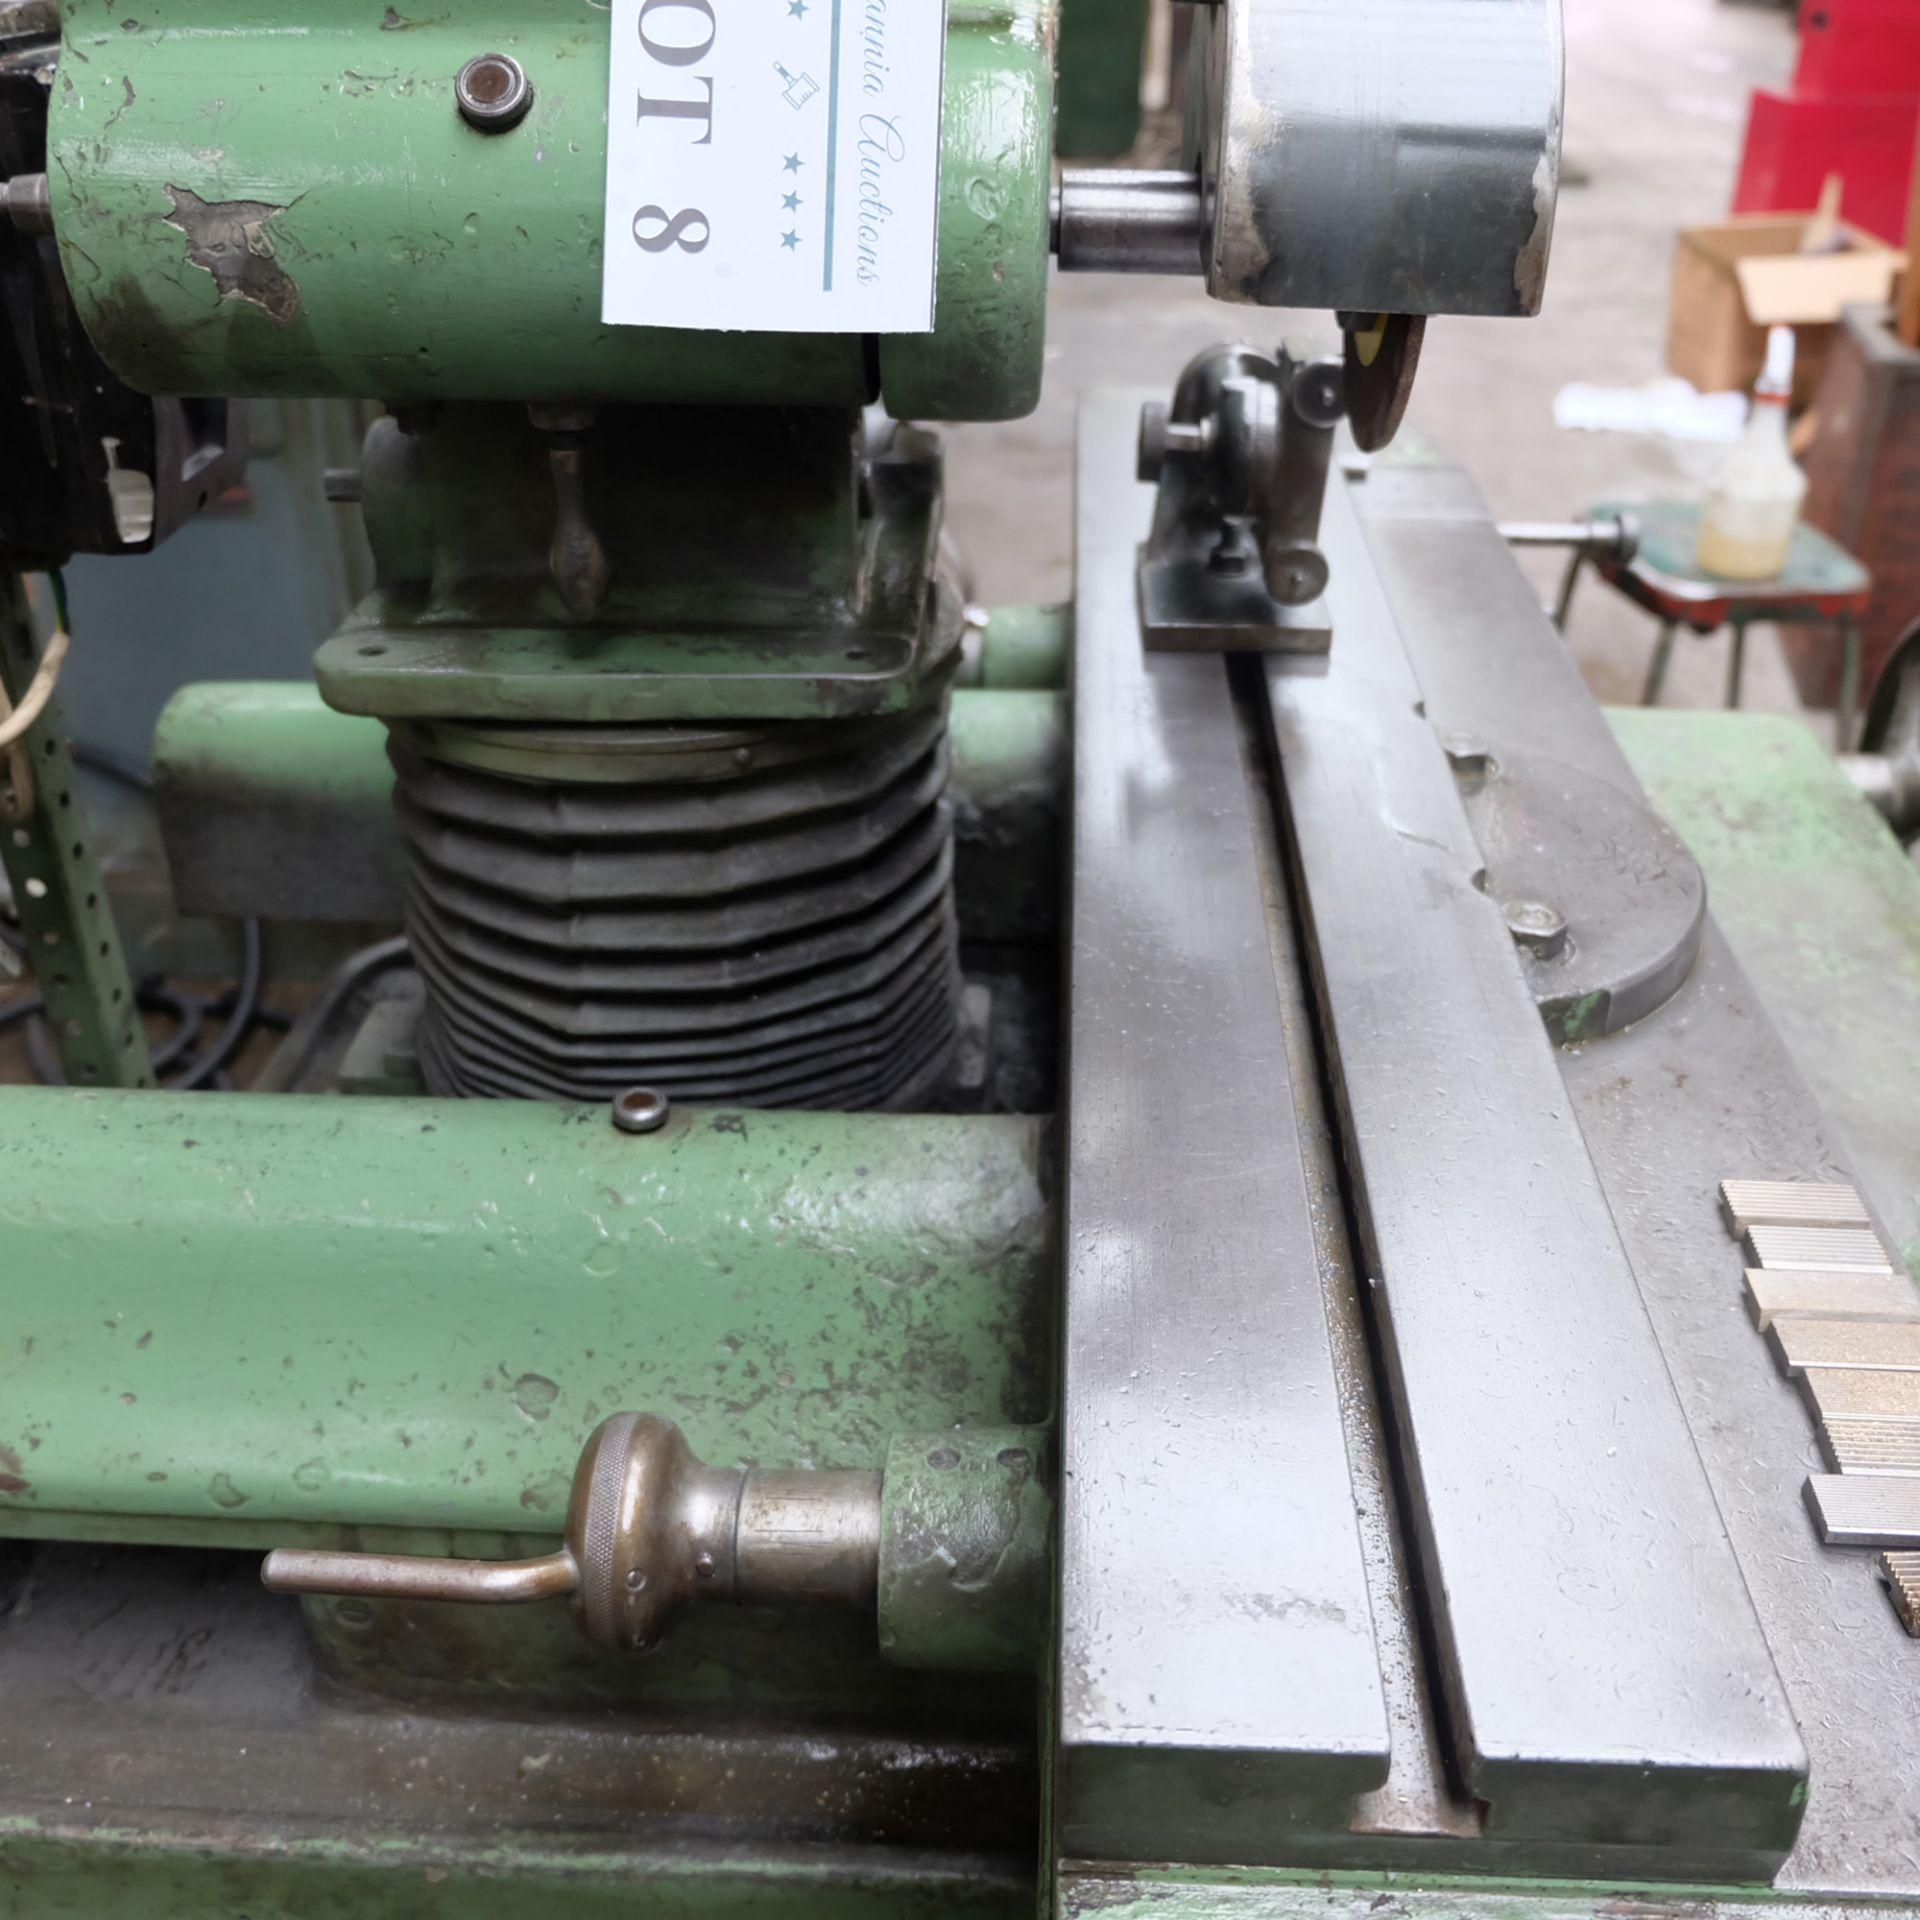 Jotes Model NVA-25 Tool and Cutter Grinder. Rise and Fall and Tilt and Swivel Head. - Image 5 of 6